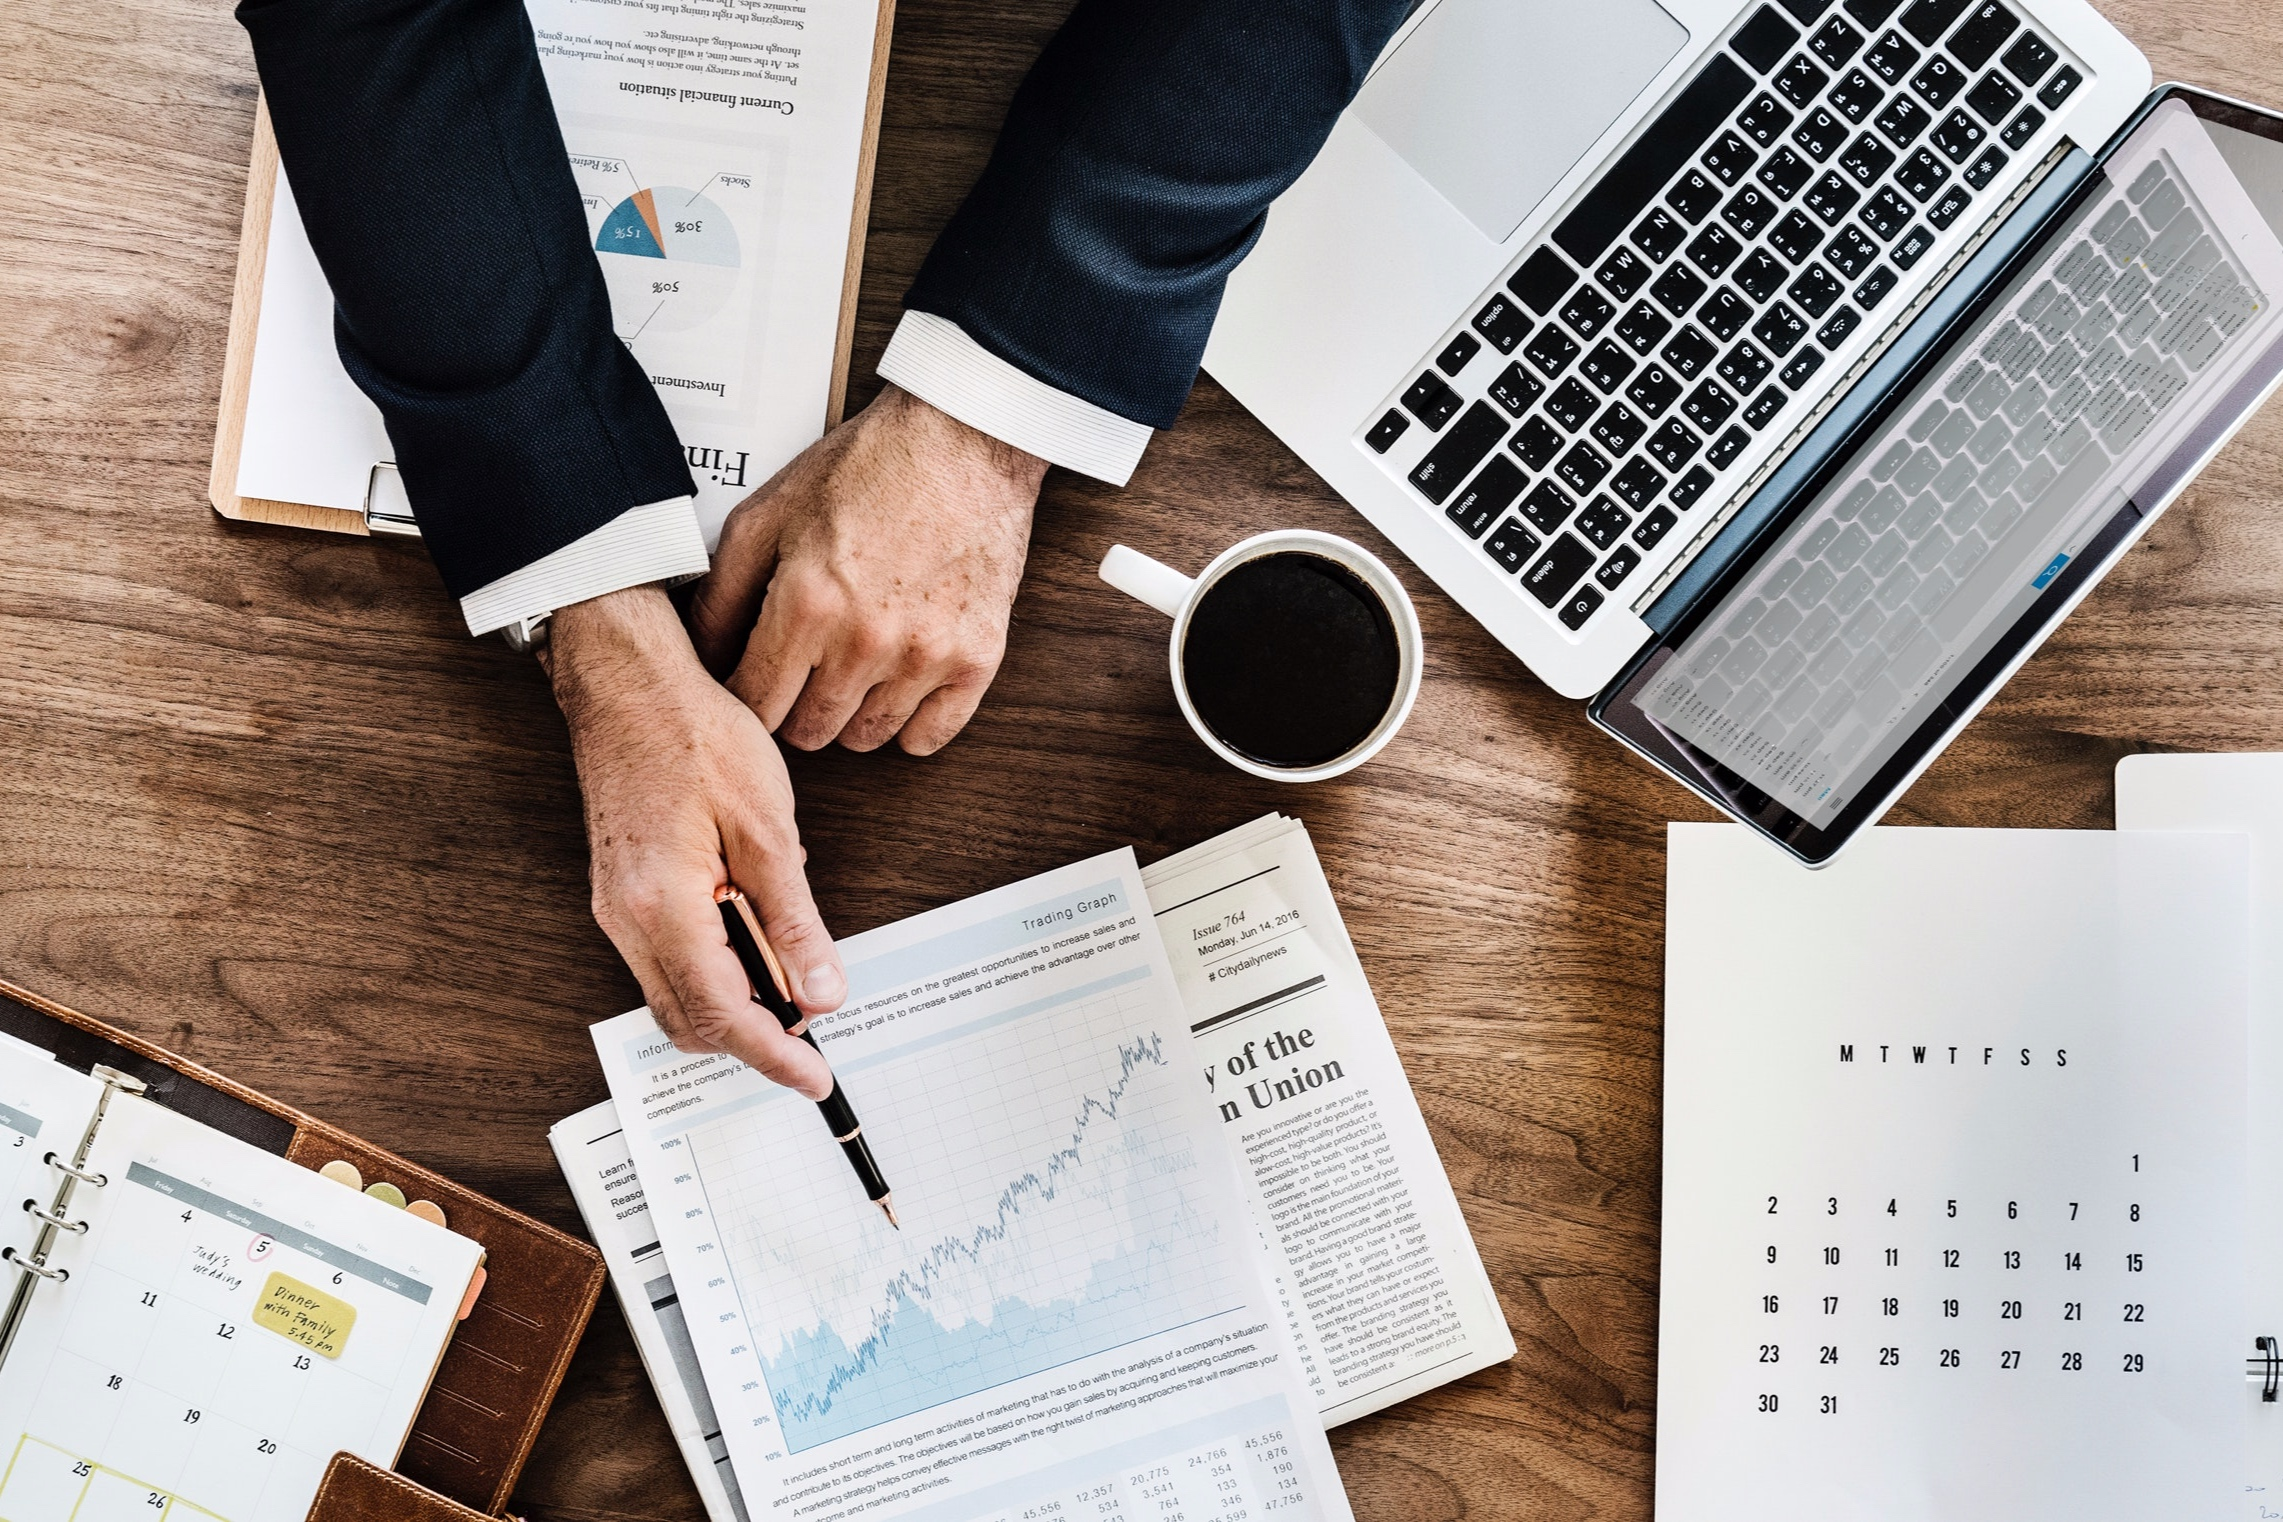 Registry Business Services - Our team provides end-to-end registry business planning and management services, including market assessments and business cases, business plan and strategy development, budgeting, technology planning, corporate sponsorship program design, and operational model development.